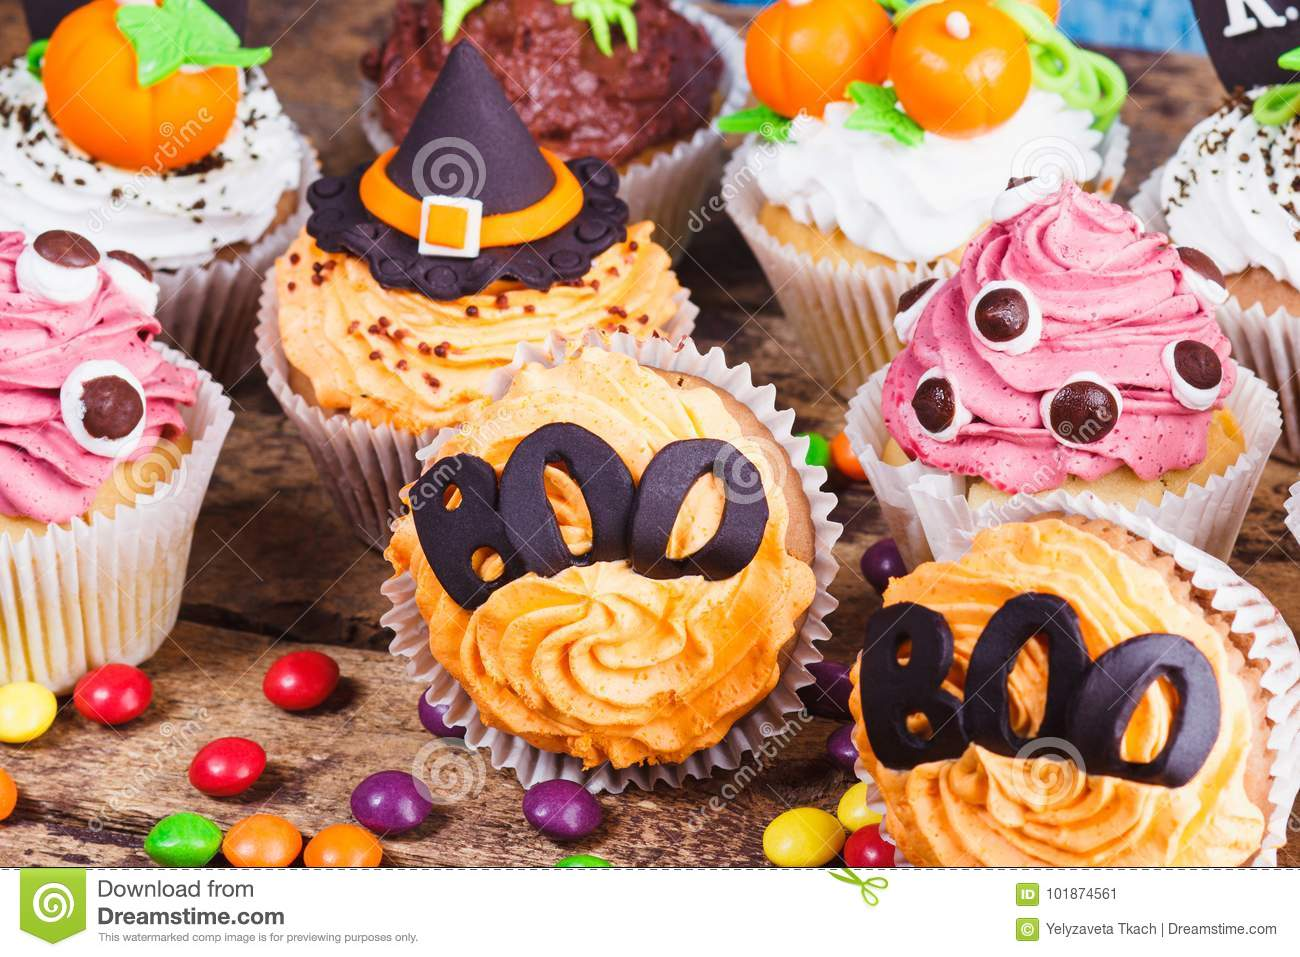 Halloween cupcakes met gekleurde decoratie stock for Decoratie cupcakes